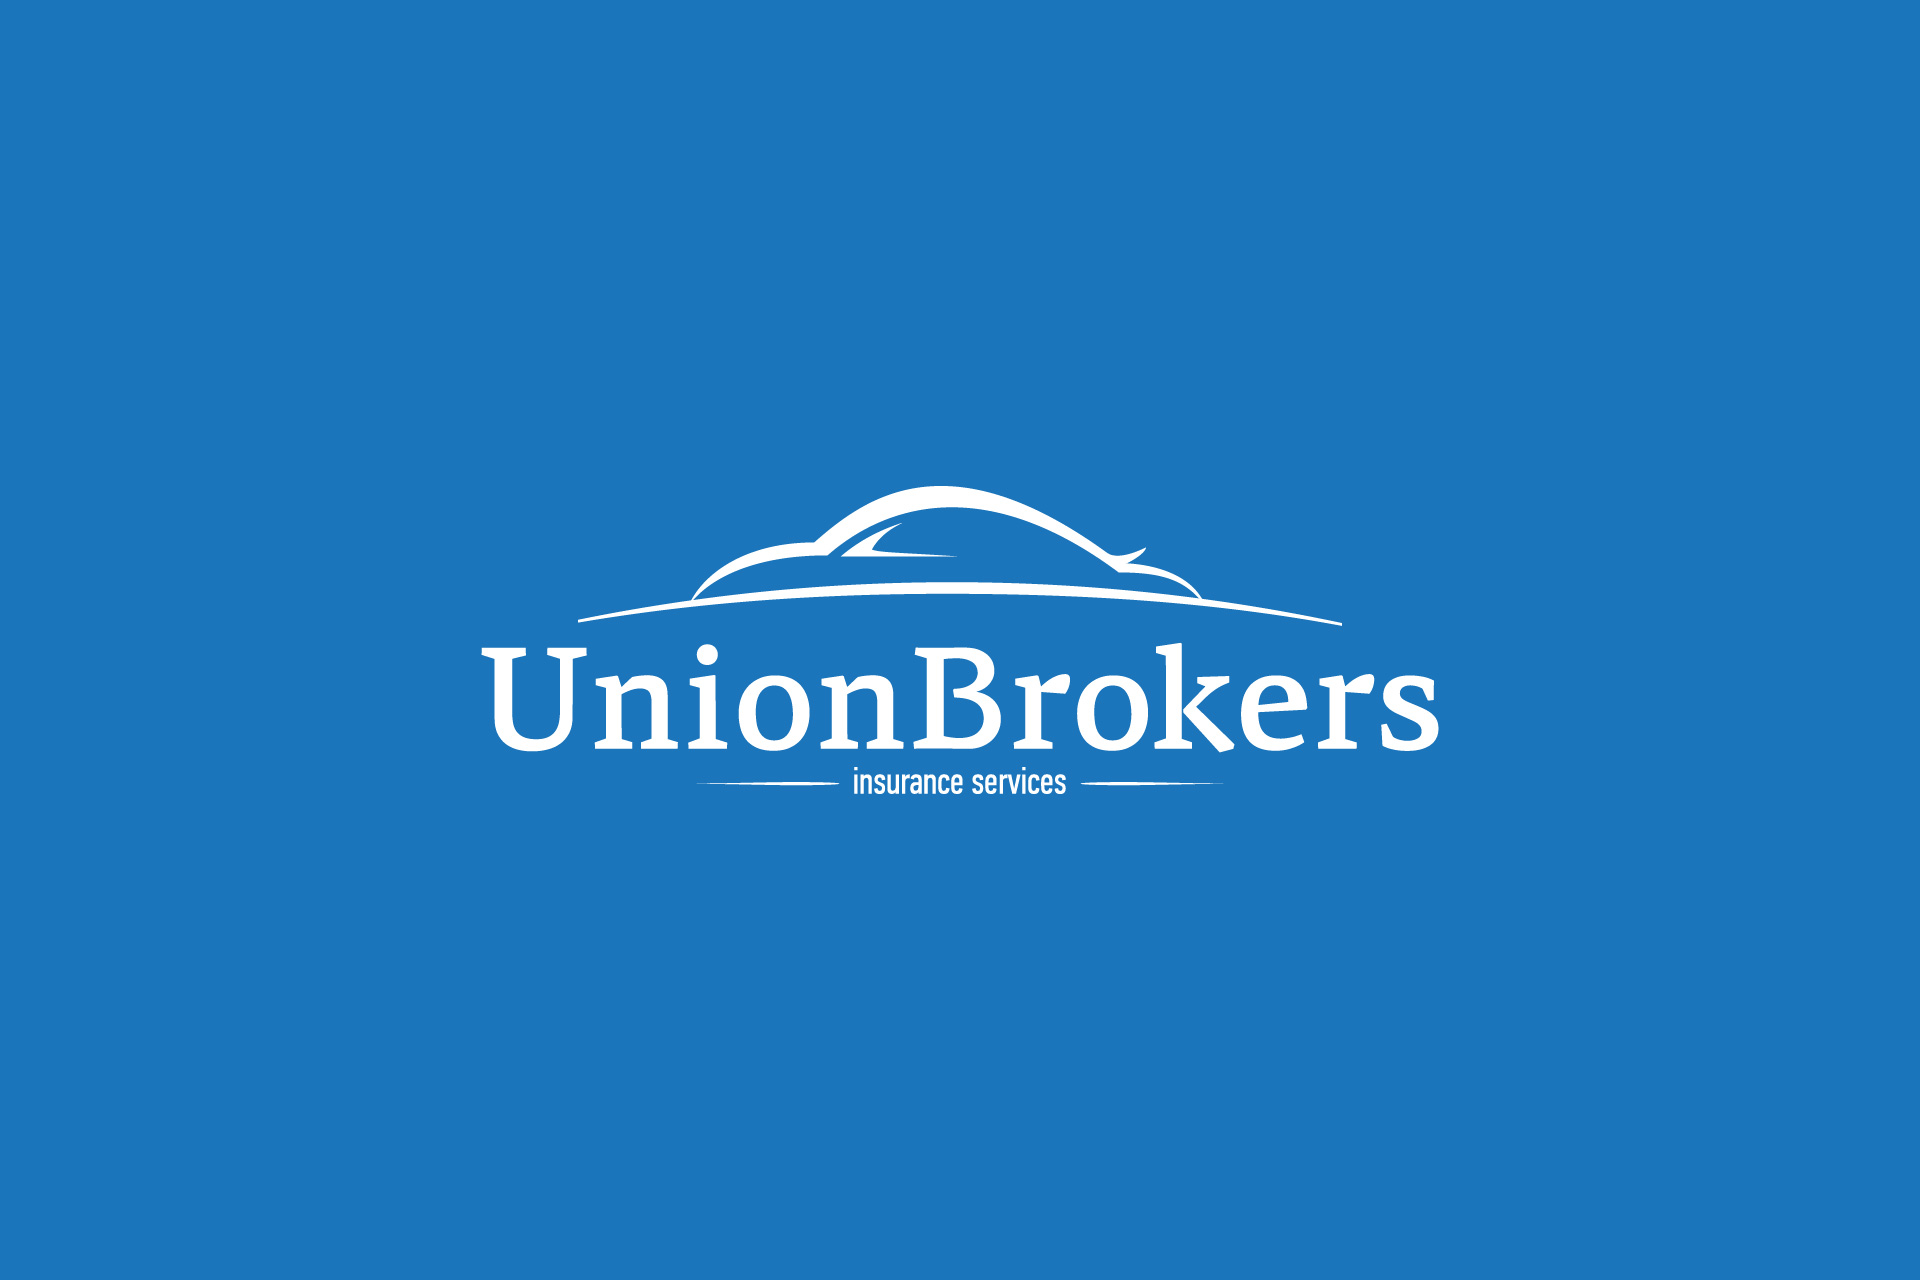 Union Brokers